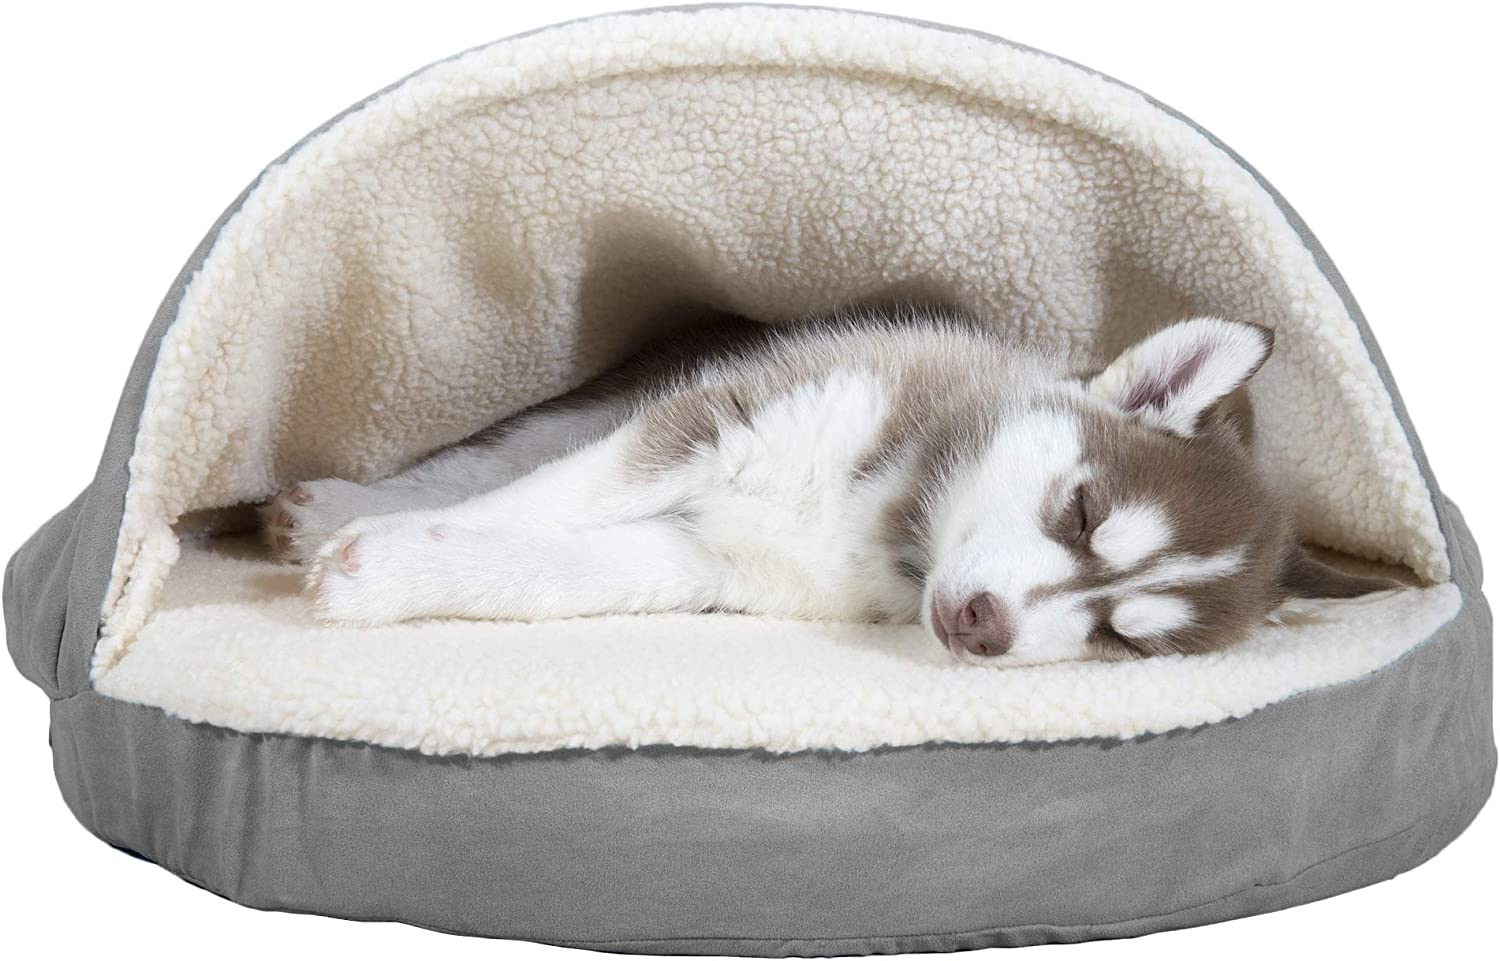 Furhaven Pet Dog Bed - Orthopedic Round Cuddle Nest Faux Sheepskin Snuggery Blanket Burrow Pet Bed with Removable Cover for Dogs and Cats, Gray, 26-Inch : Pet Supplies